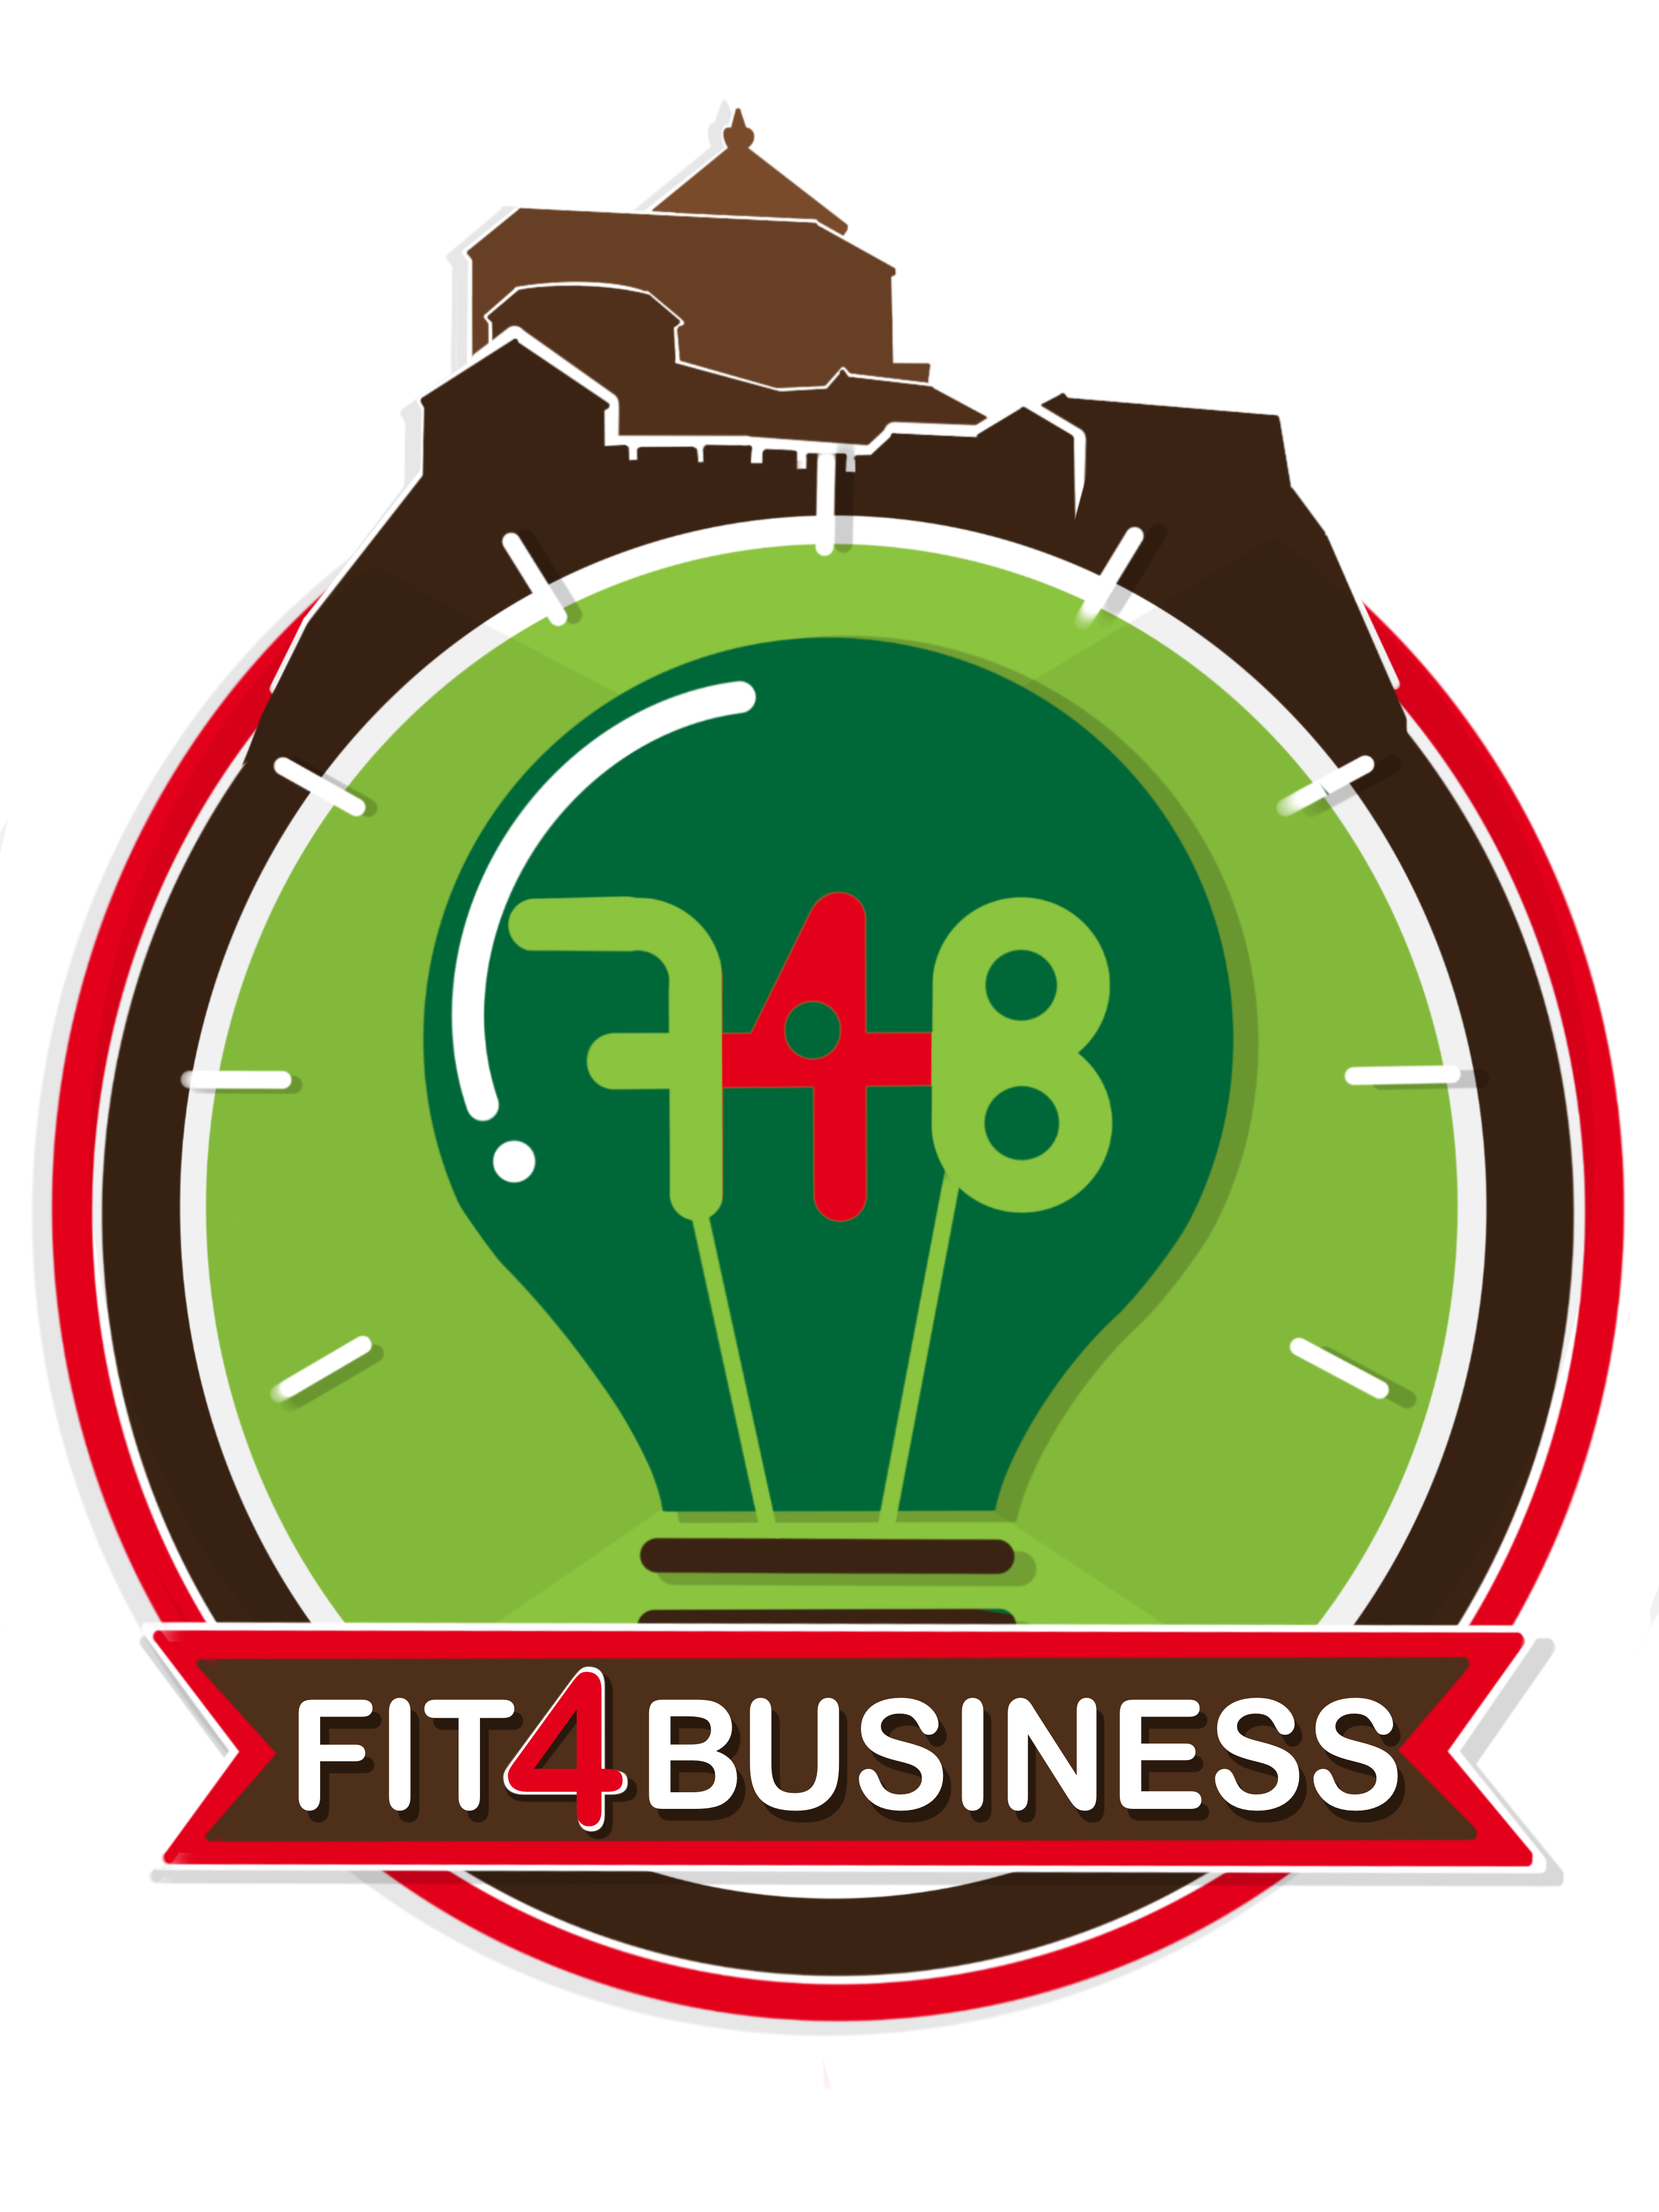 FIT4BUSINESS Sujet